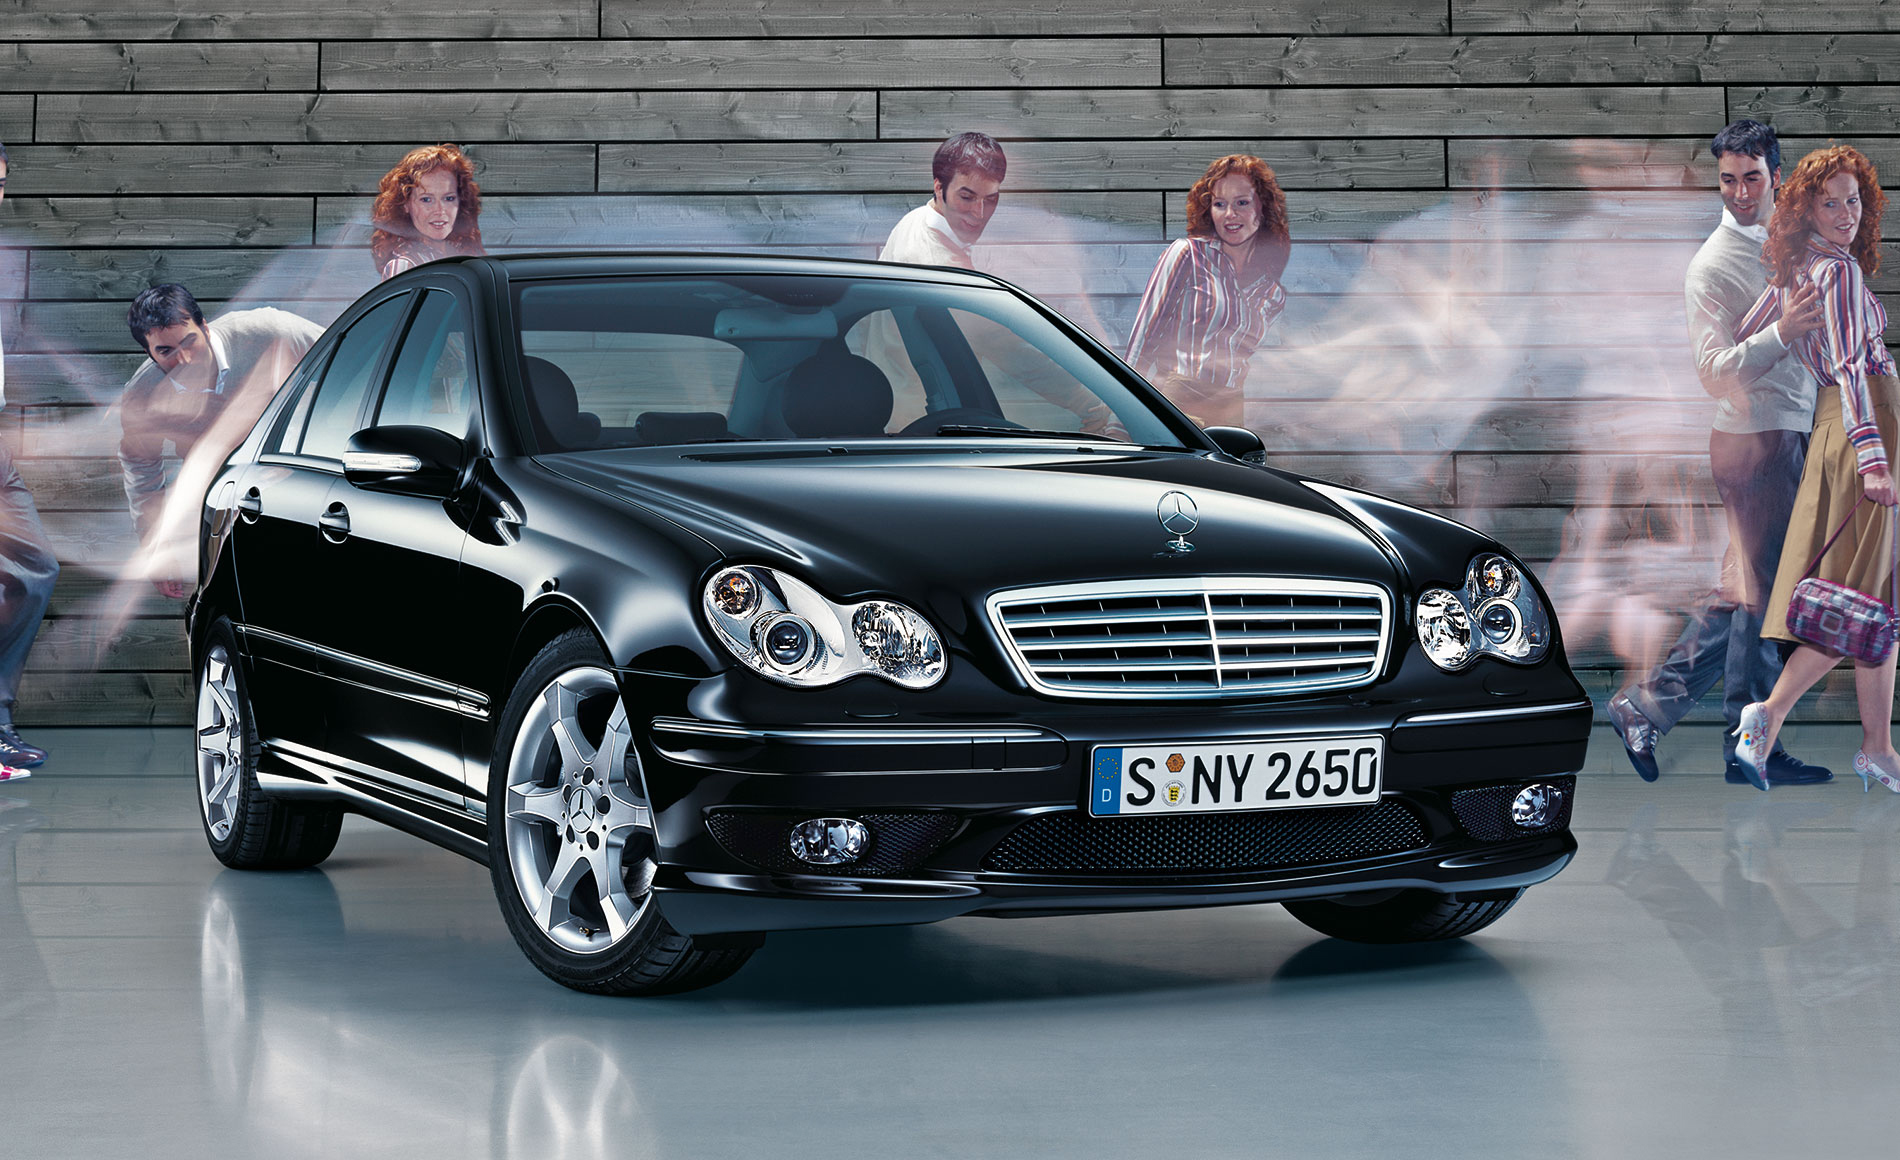 MERCEDES-BENZ C-KLASSE SPORTEDITION